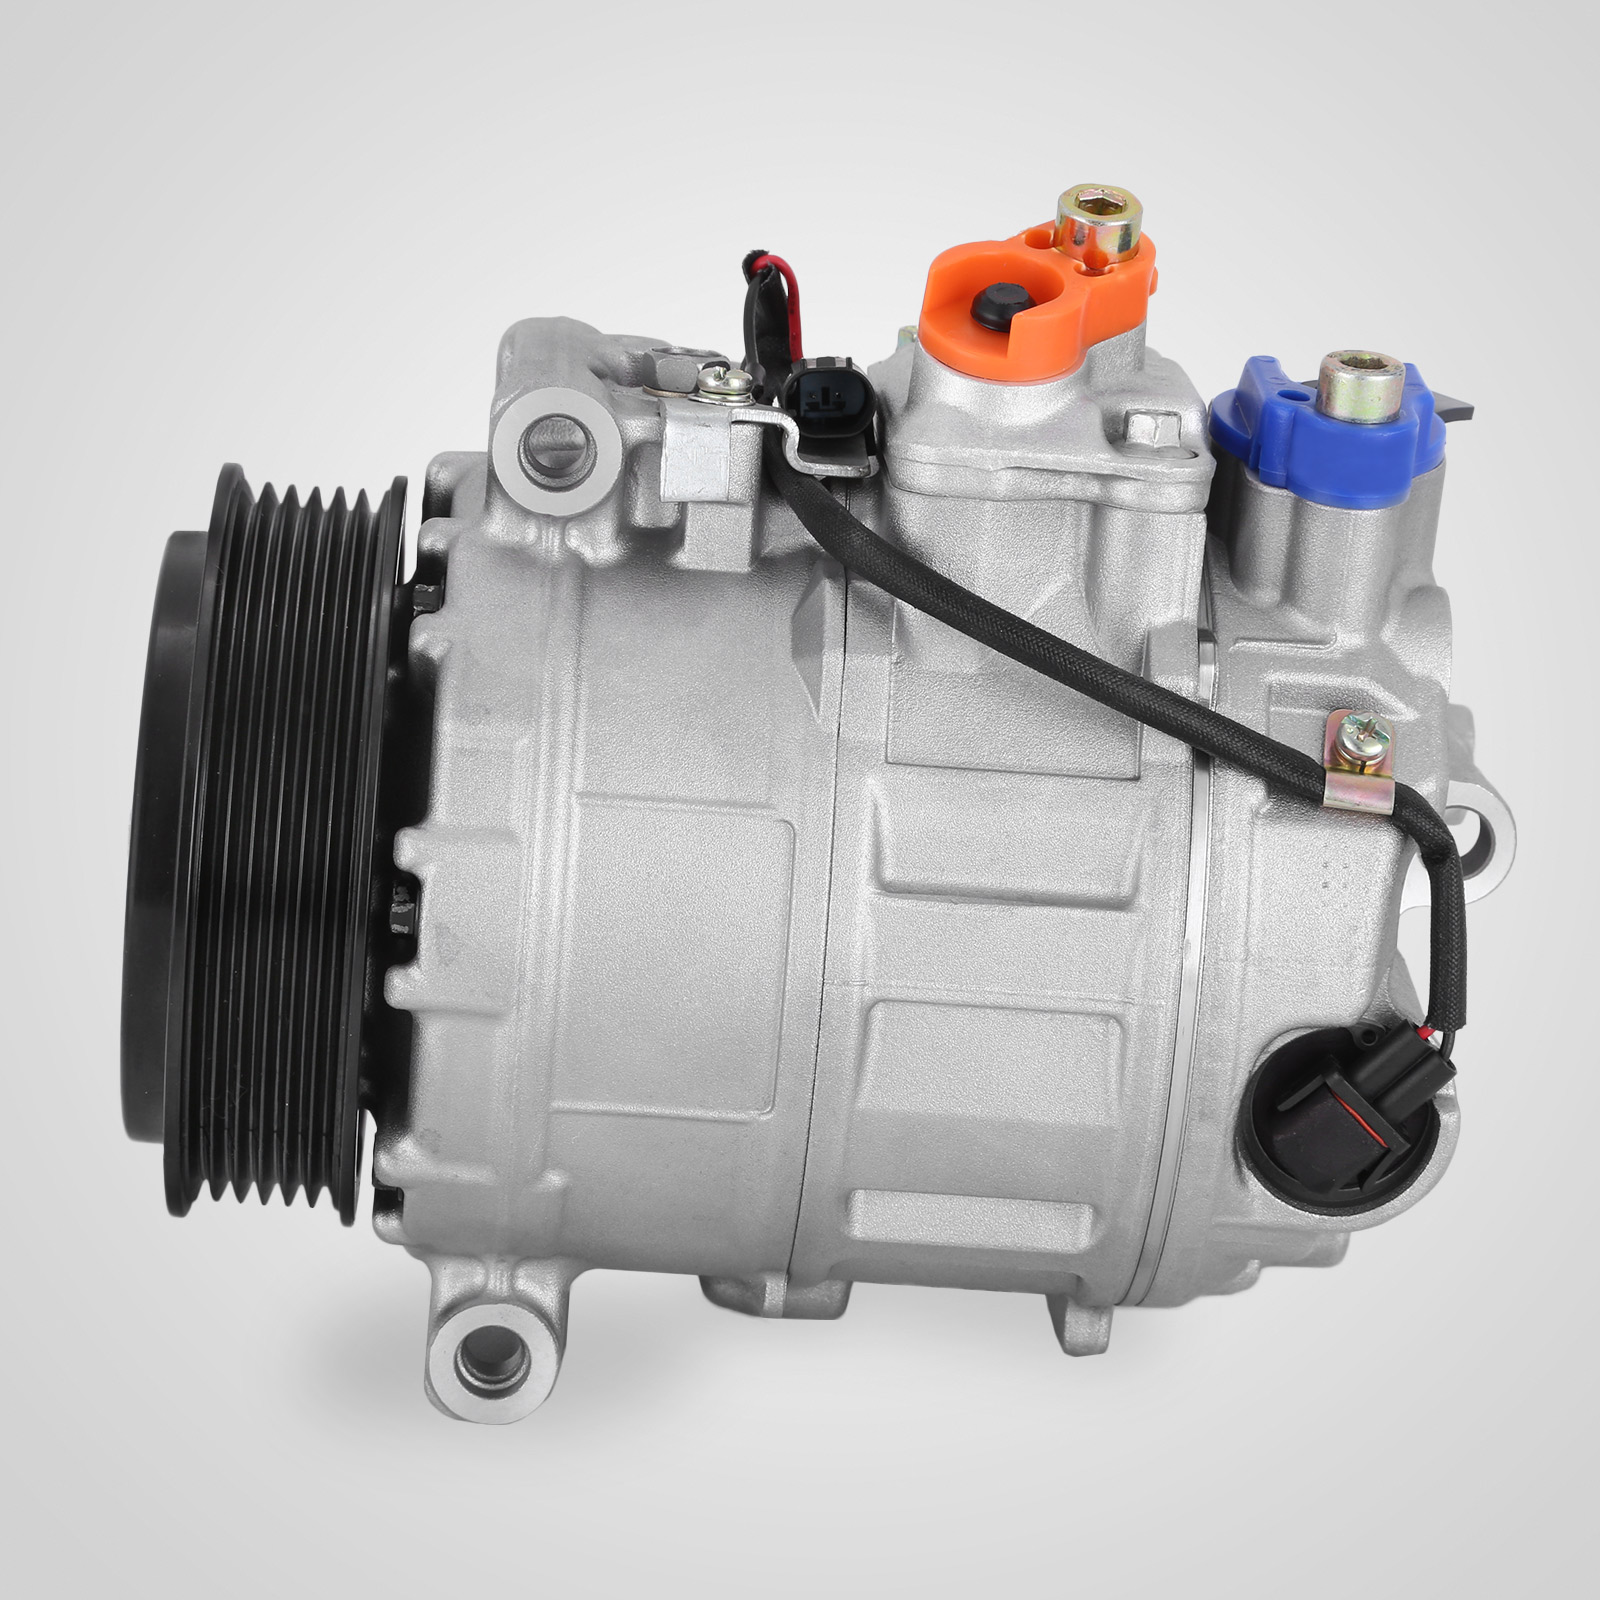 High Quality New Nugen AC Compressor with Clutch for 2001-2012 Mercedes Benz